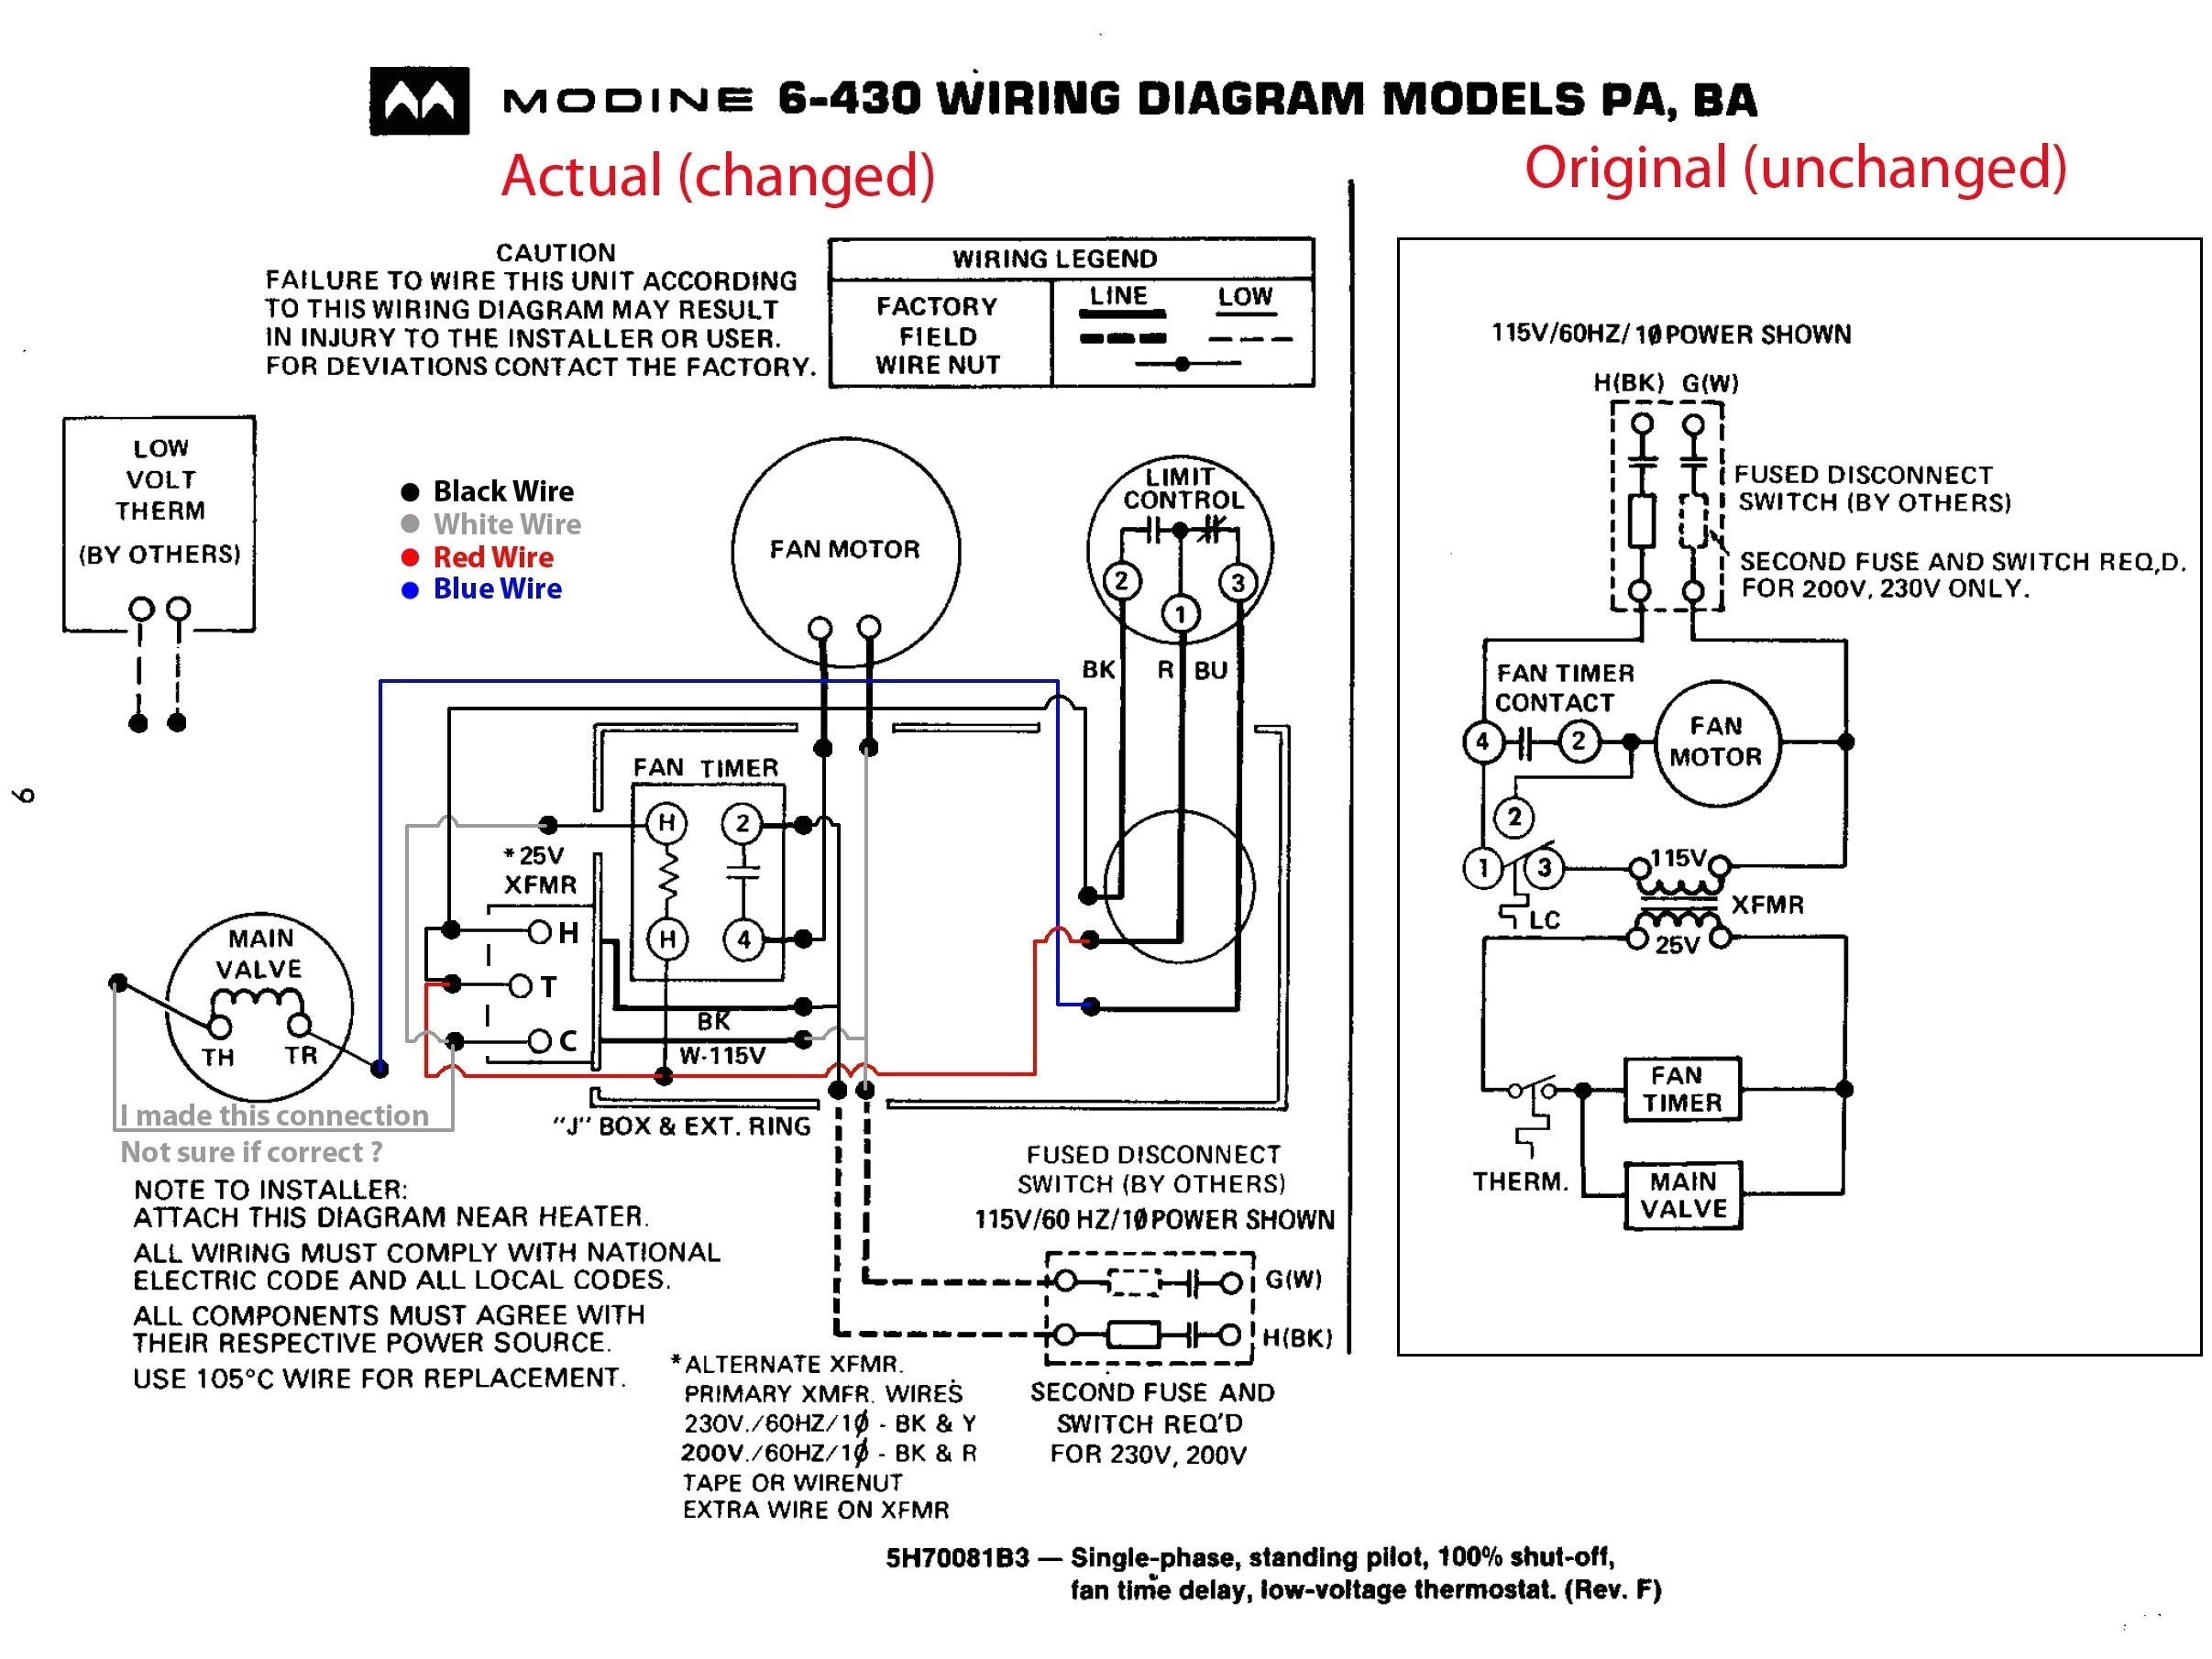 honeywell fan relays wiring diagrams wiring diagram user honeywell fan relays wiring diagrams wiring diagram fascinating